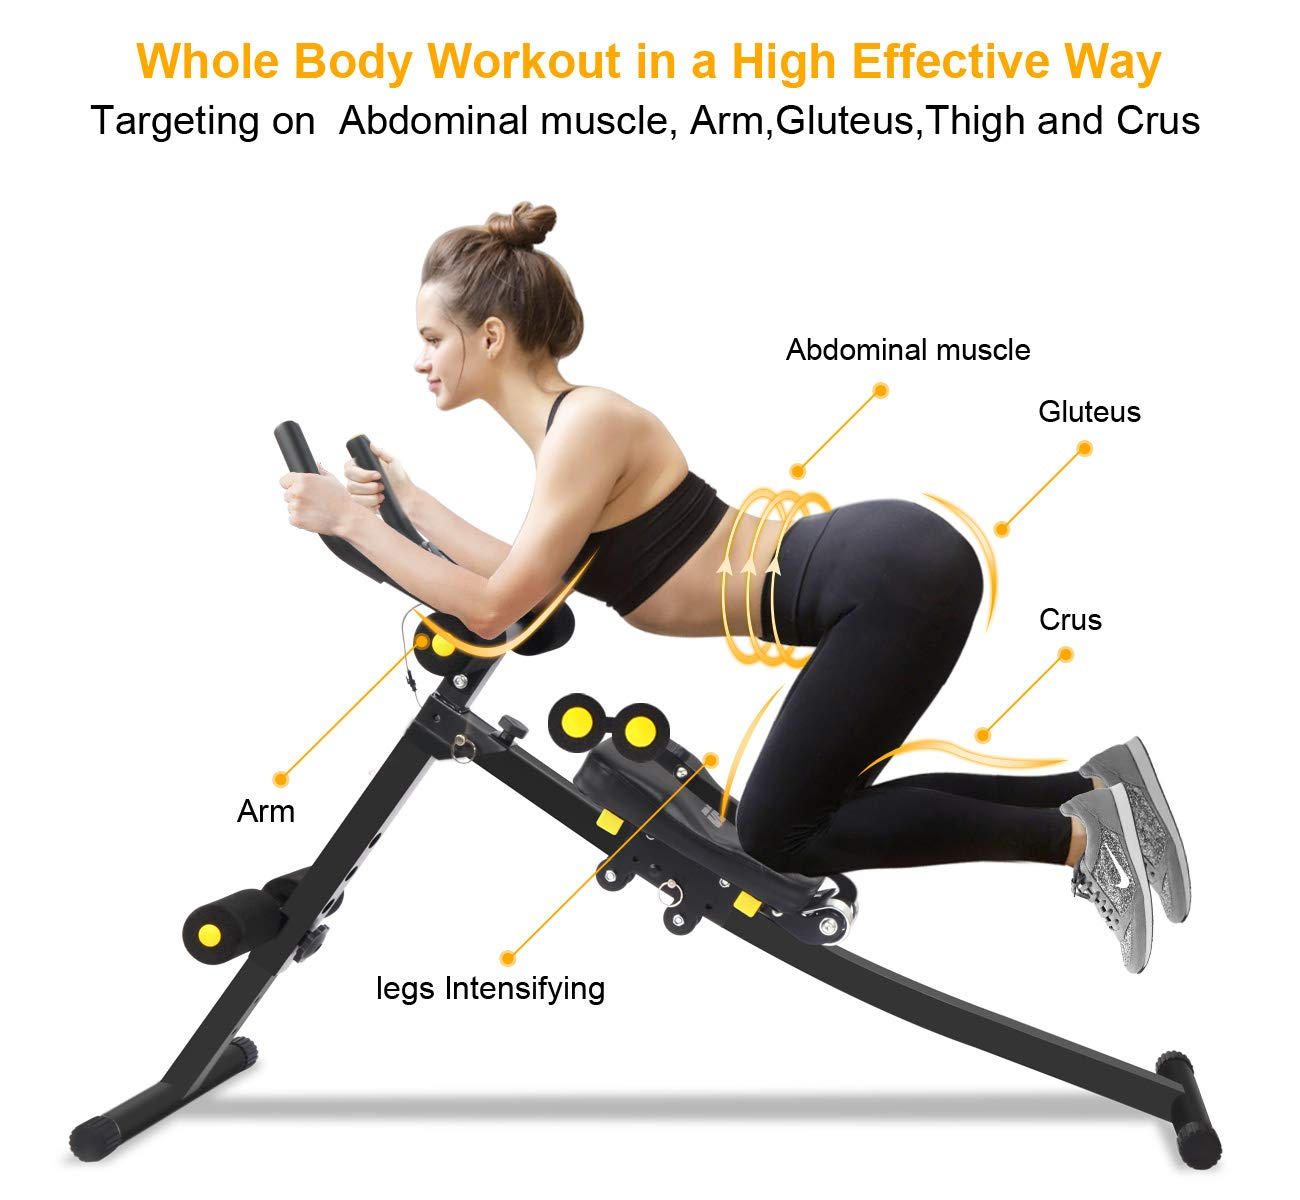 1210db48274cb IDEER LIFE Core&Abdominal Trainers Abdominal Workout Machine,Whole Body  Workout Equipment for Leg,Thighs,Buttocks,Rodeo,Height Adjustable Sit-up ...